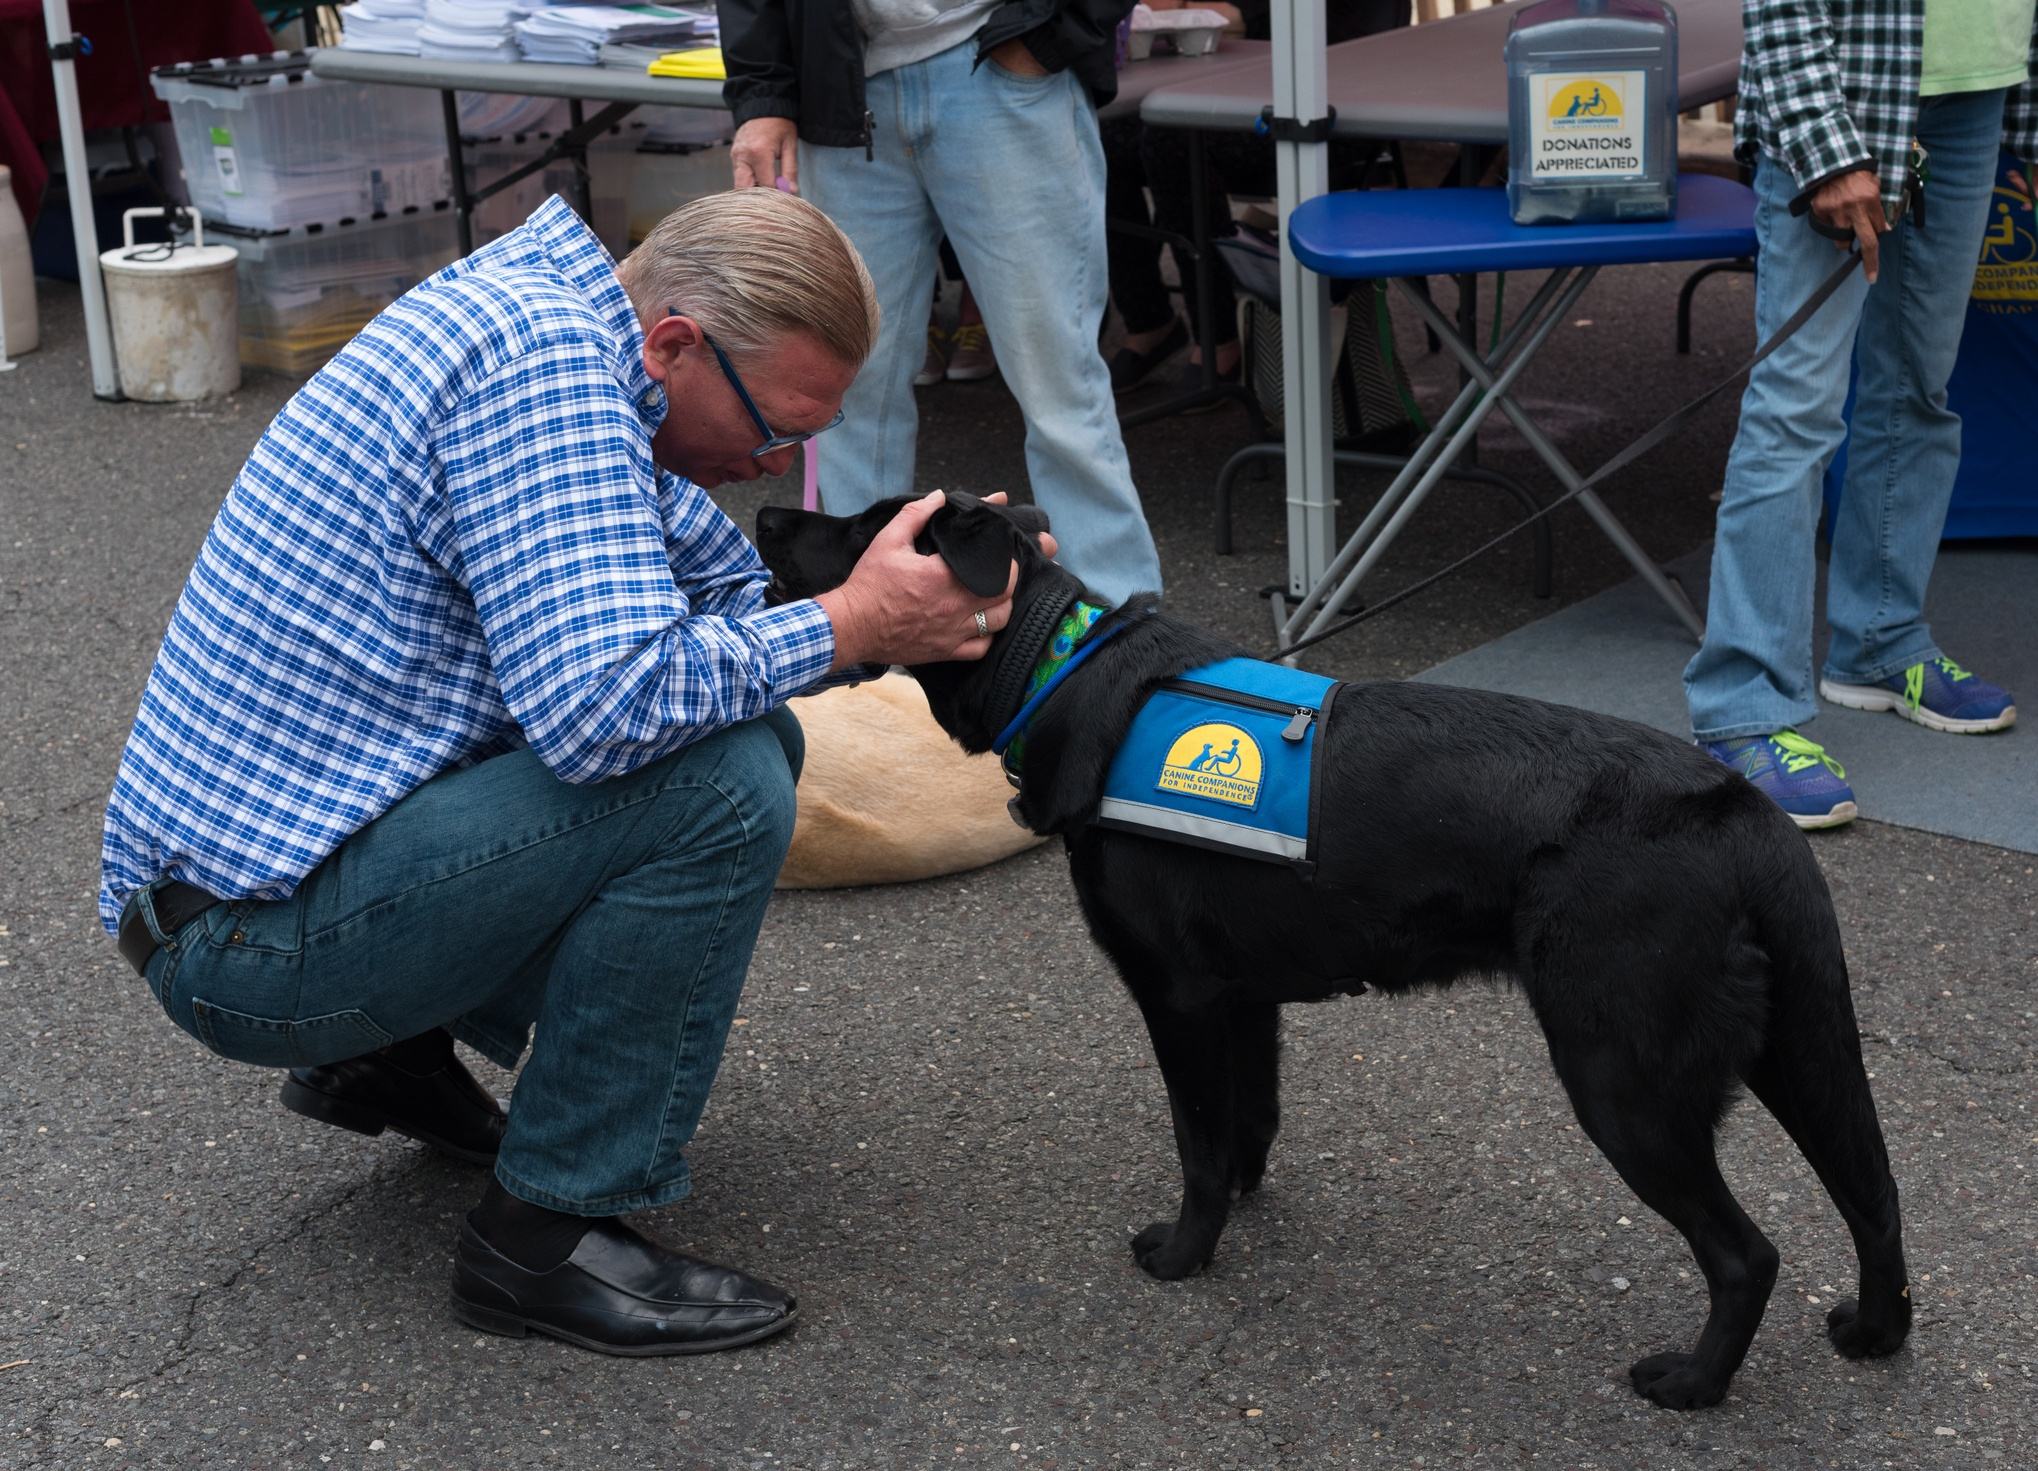 Man with service dog